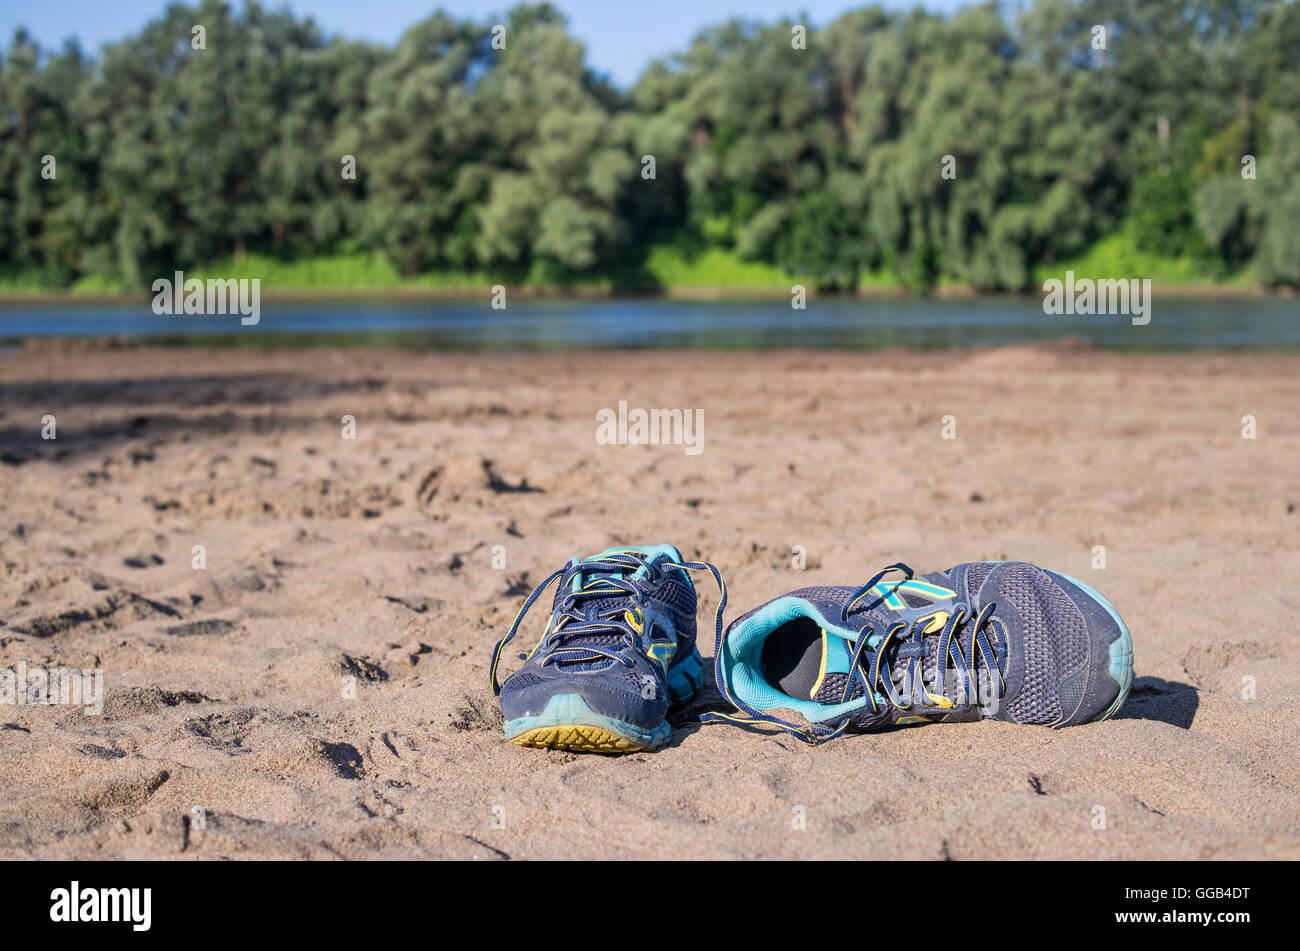 Running shoes lying on the sandy beach. Stock Photo